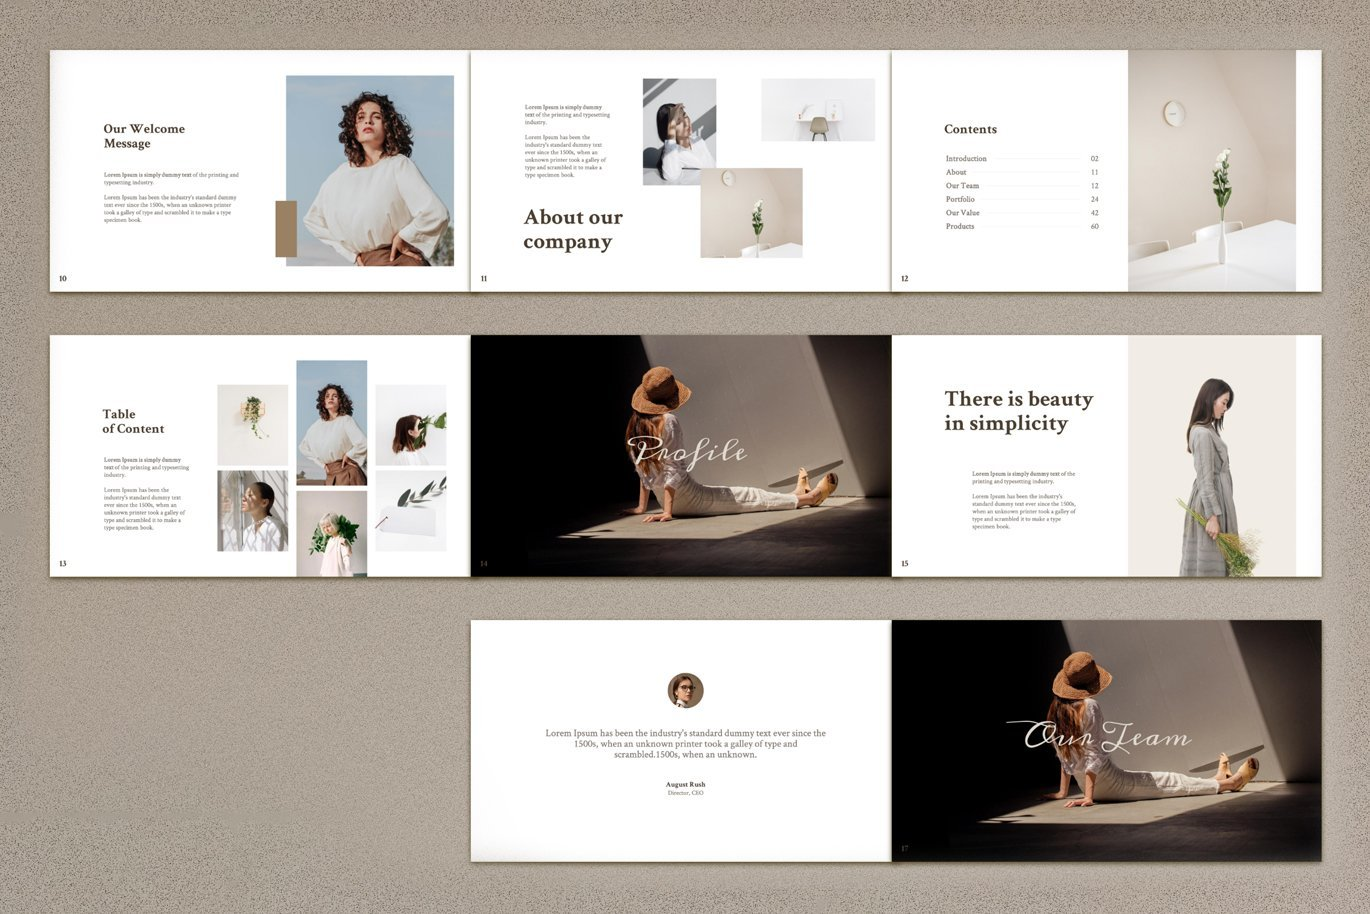 Its a laconic template for small presentation.